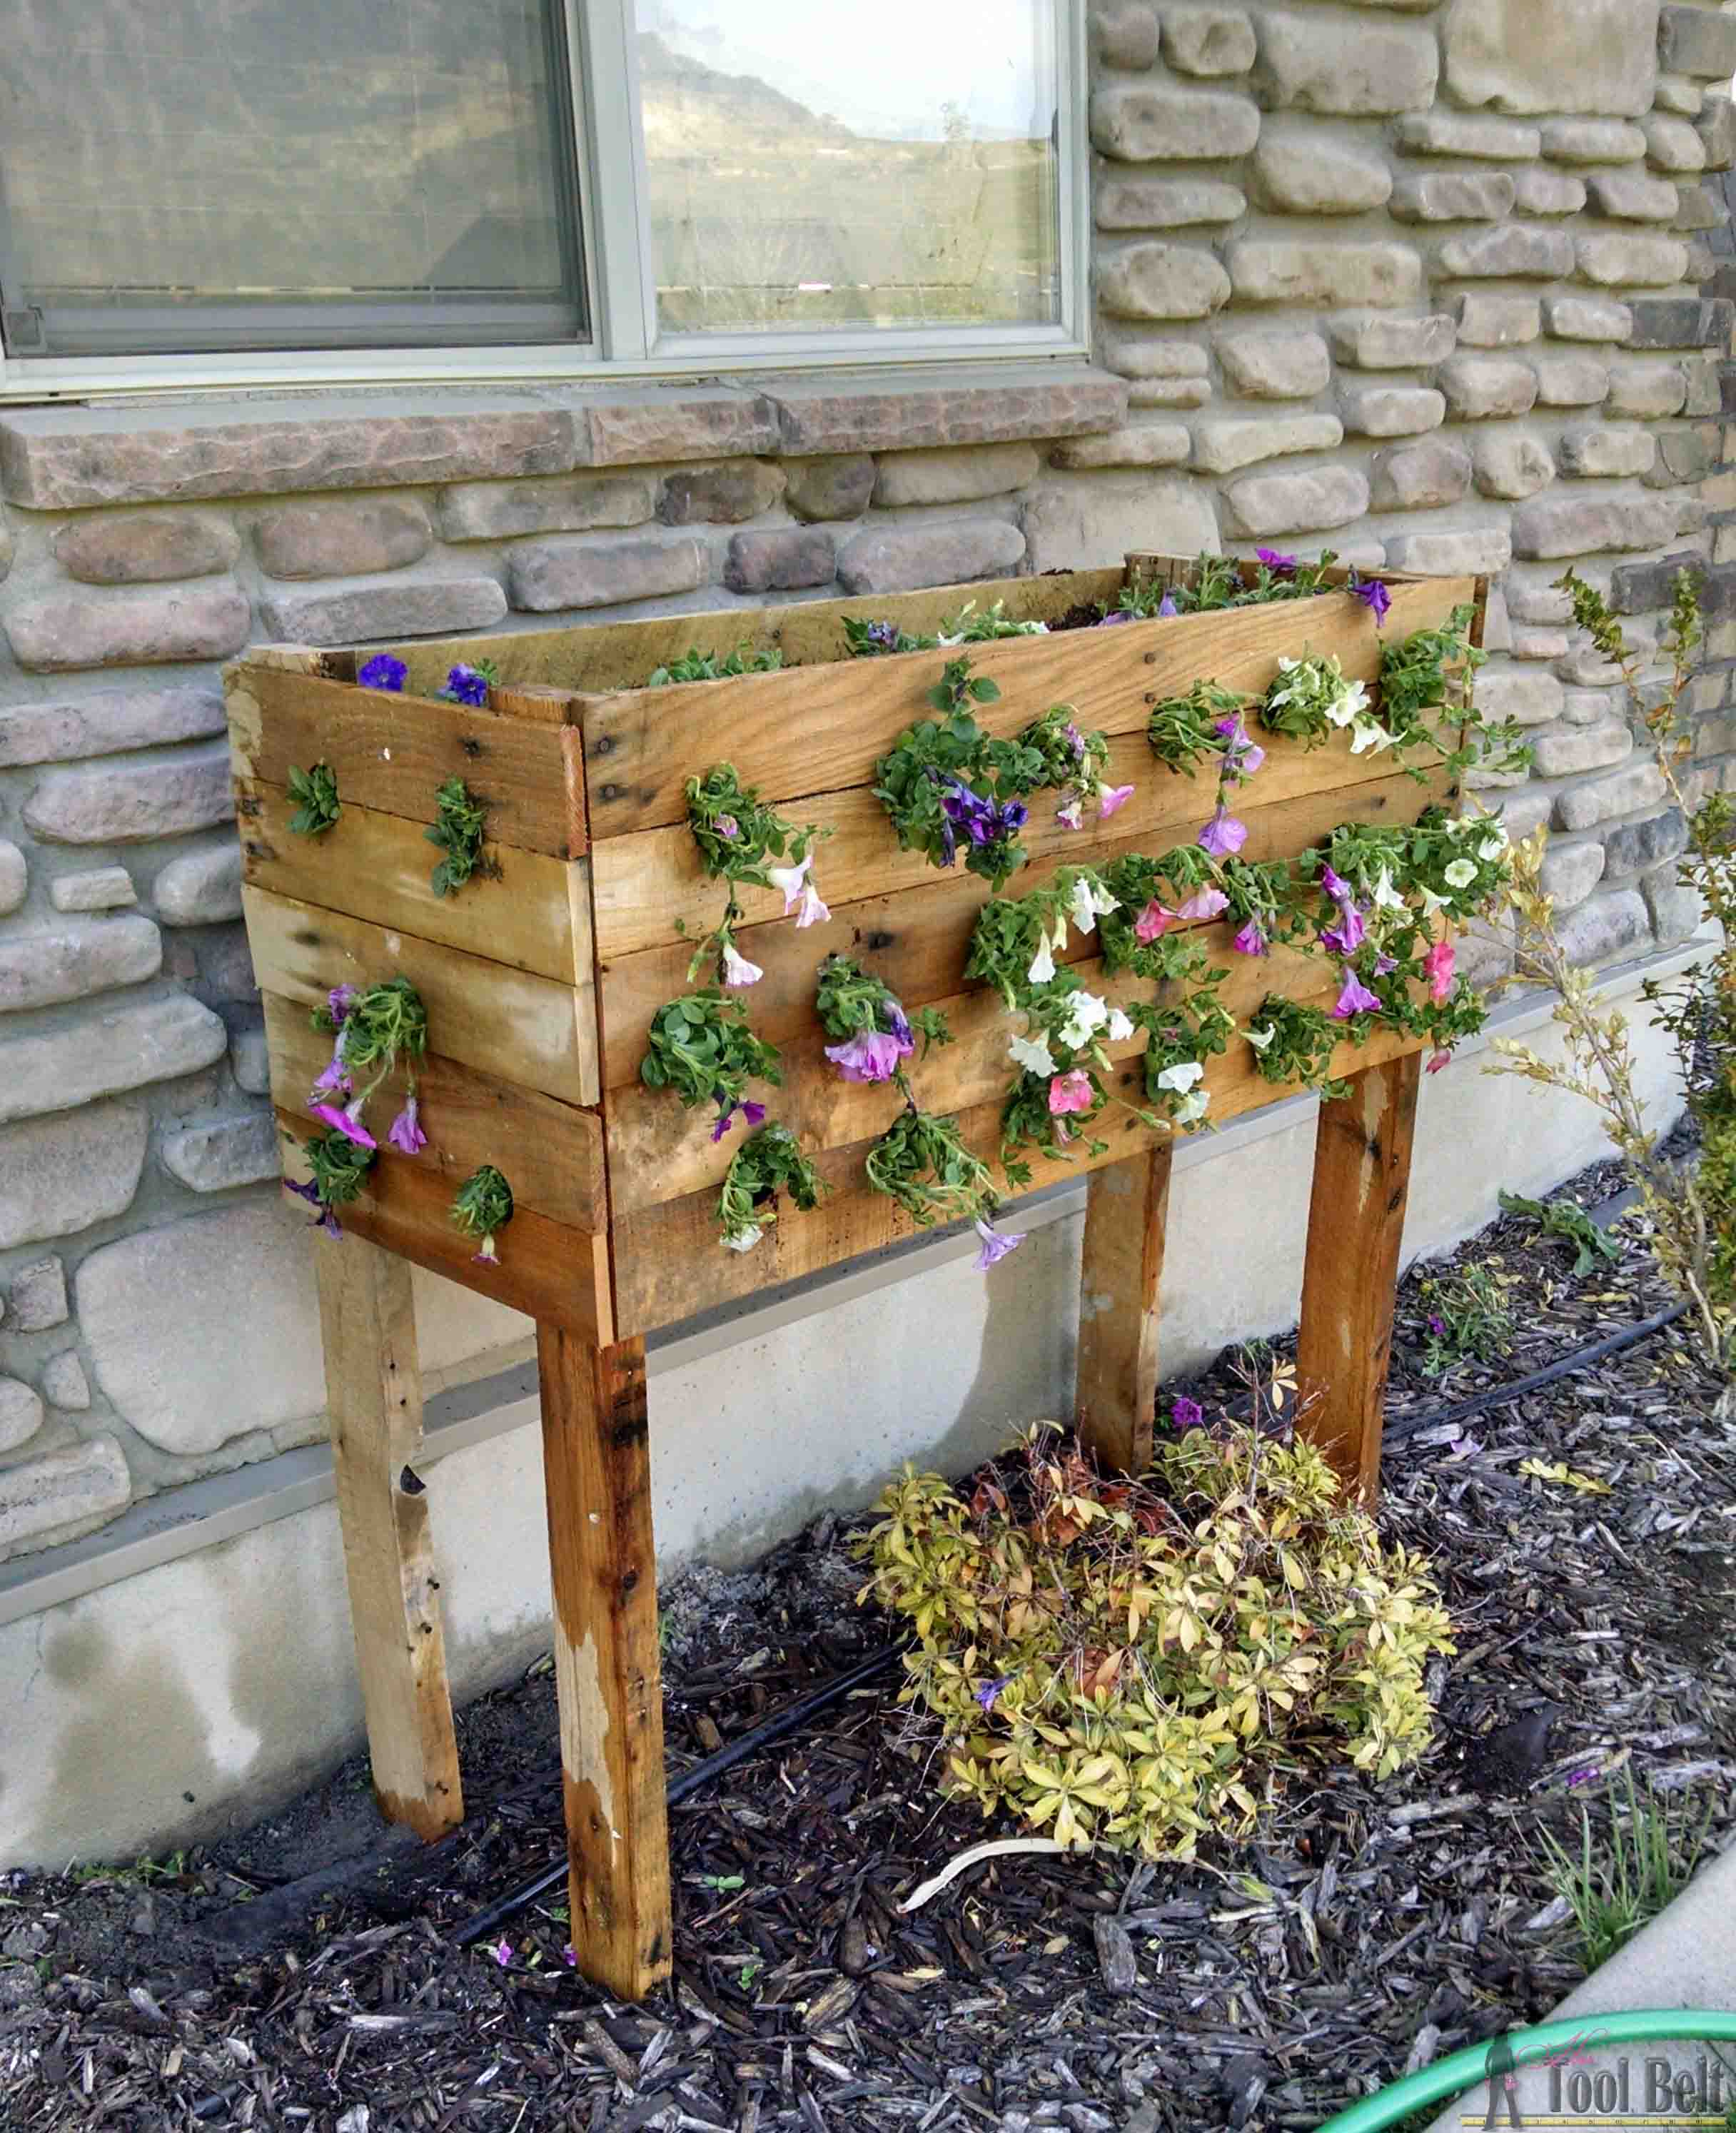 Diy Square Planter Box: 37 Outstanding DIY Planter Box Plans, Designs And Ideas